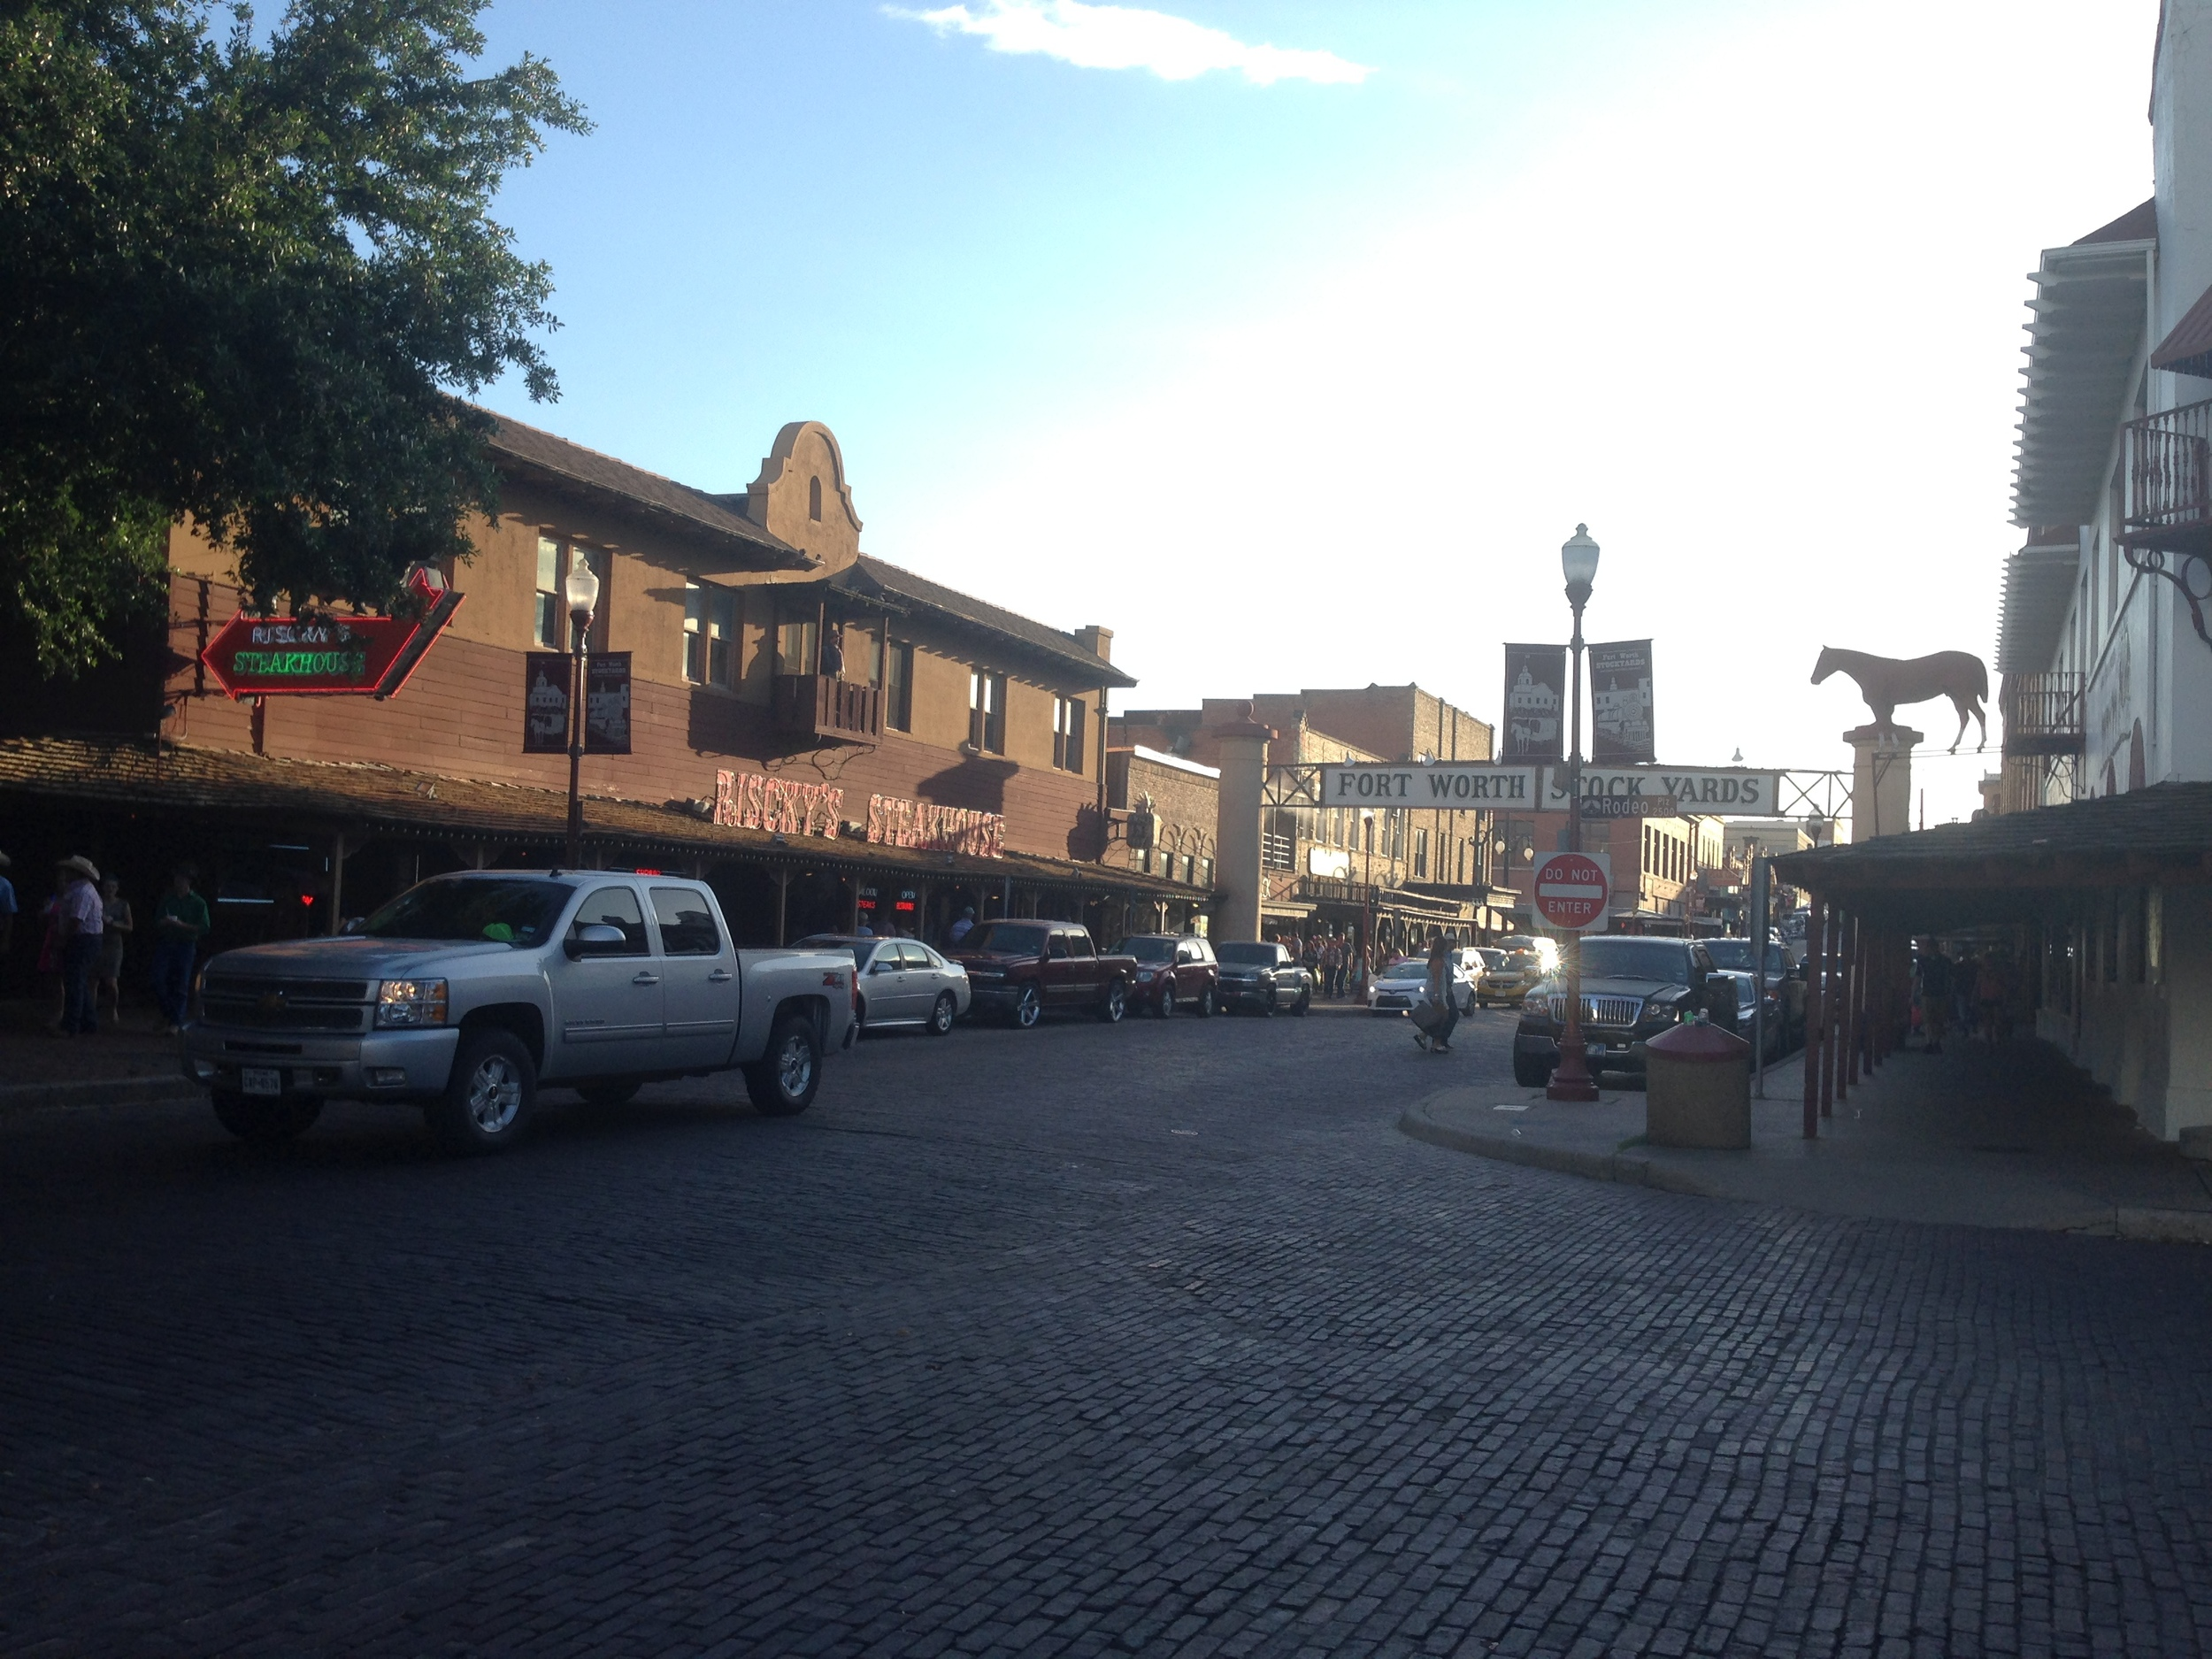 Fort Worth Stockyards, outside the rodeo. I forgot to bring my camera so these photos were just from my phone